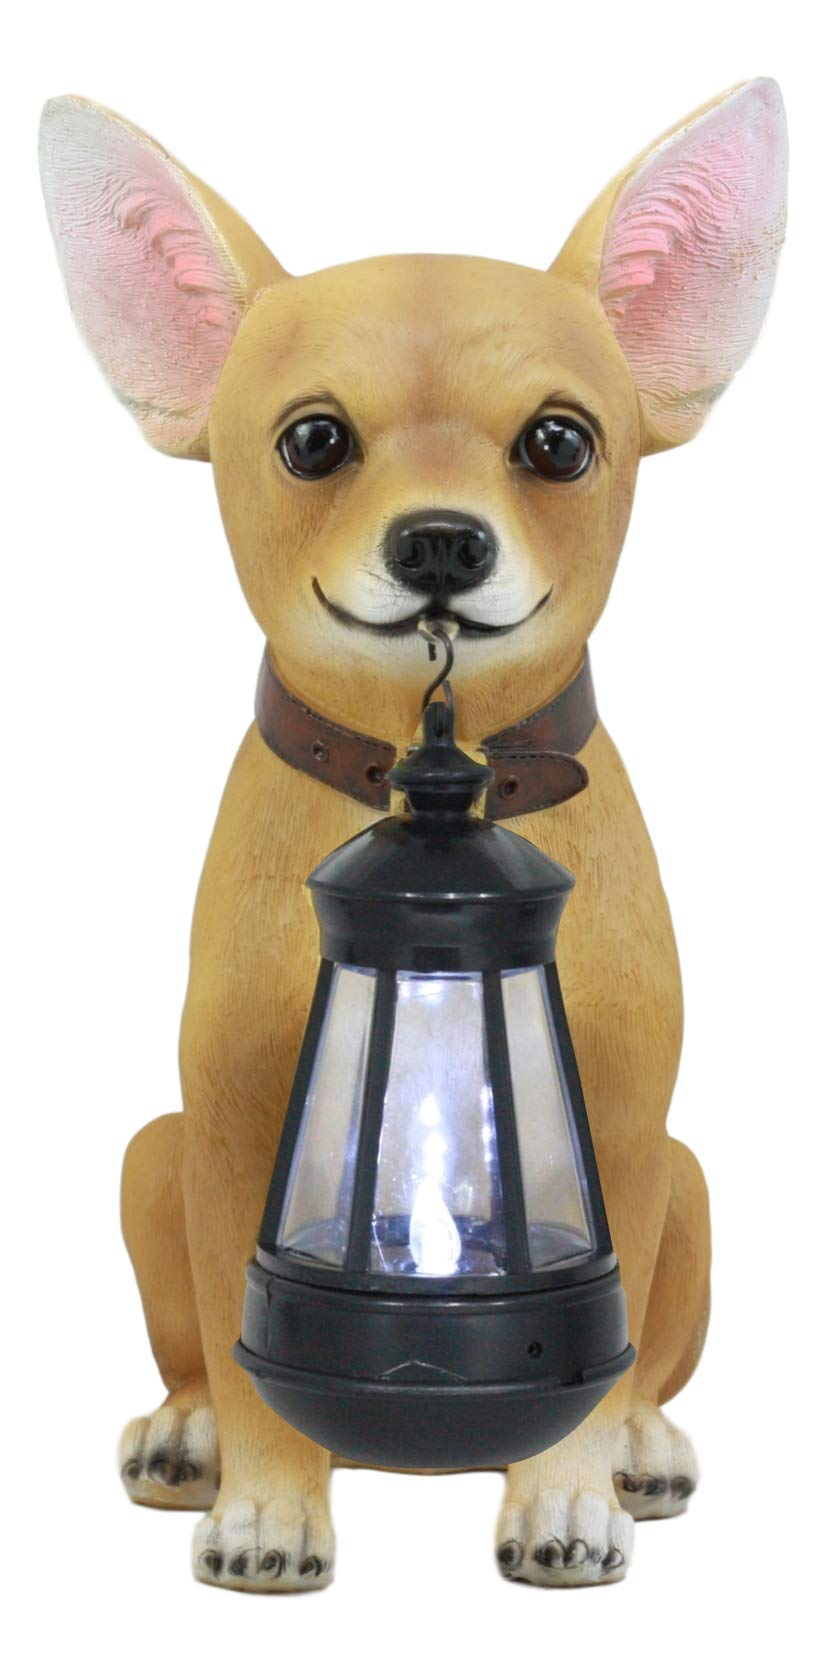 Ebros Picante Mexican Chihuahua Dog Decor Path Lighter Statue 12.5''Tall with Solar LED Light Lantern Lamp This Little Light of Mine by Ebros Gift